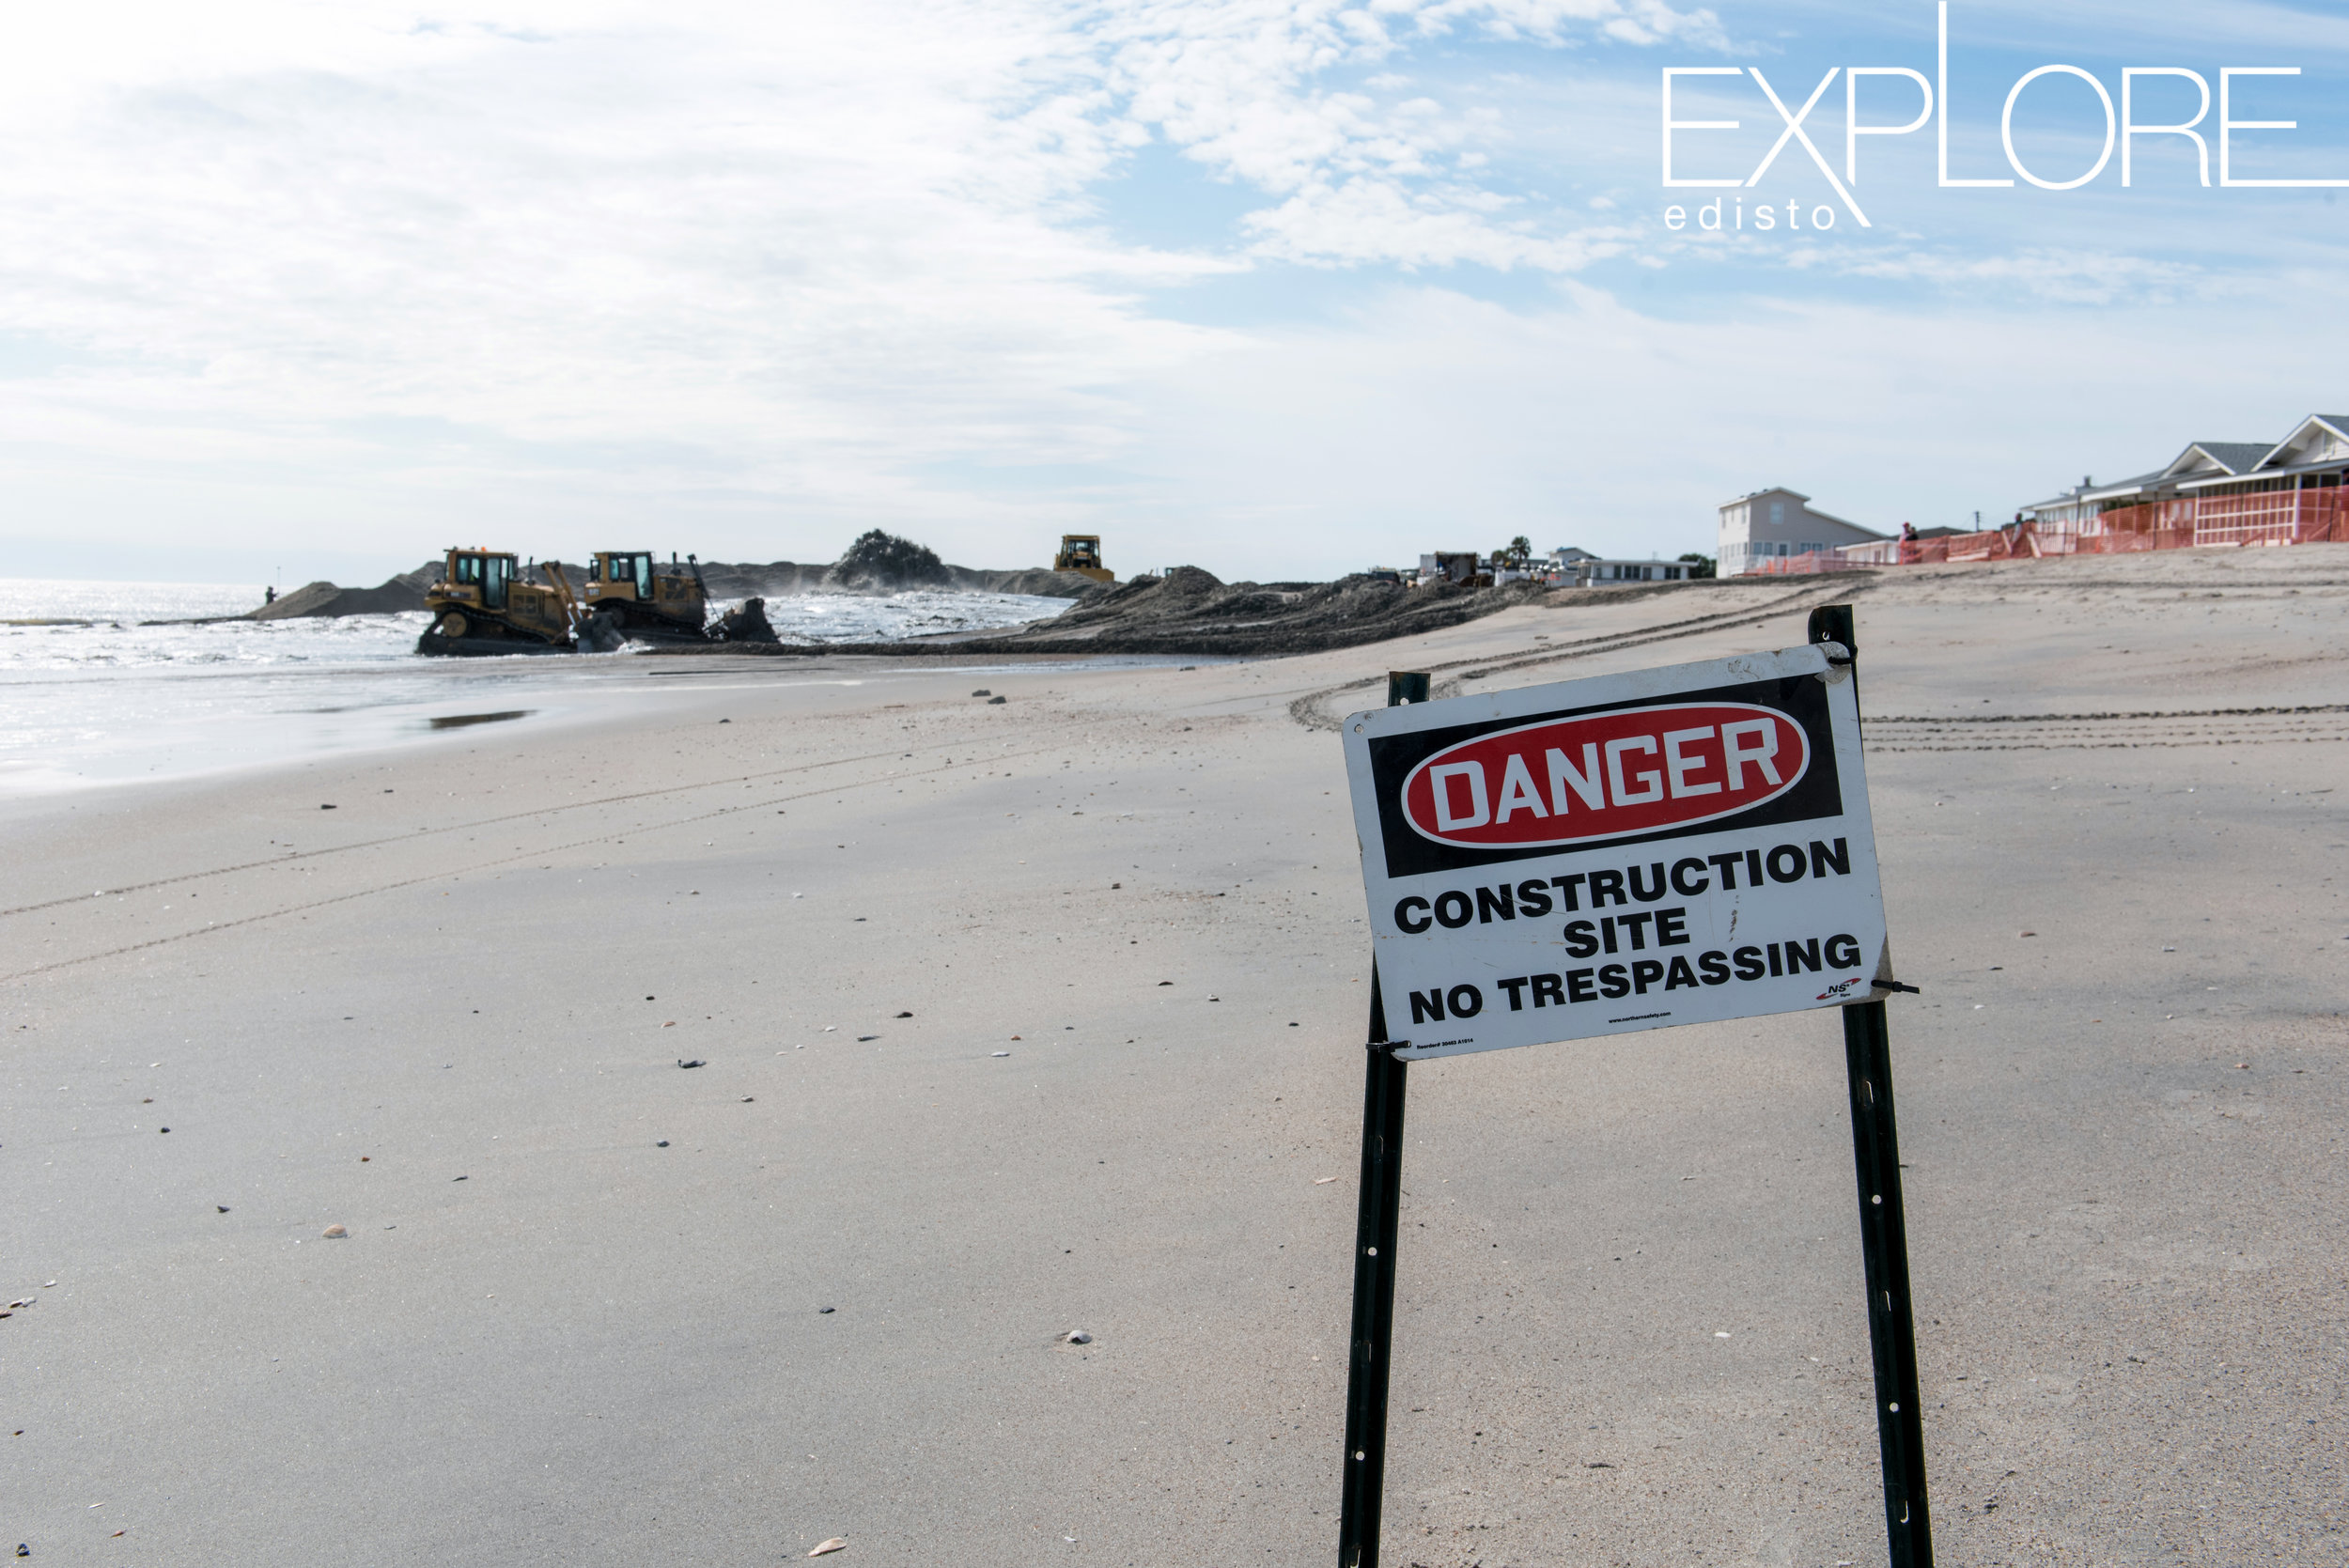 Danger, Construction Site sign on the beach in front of beach nourishment work site.